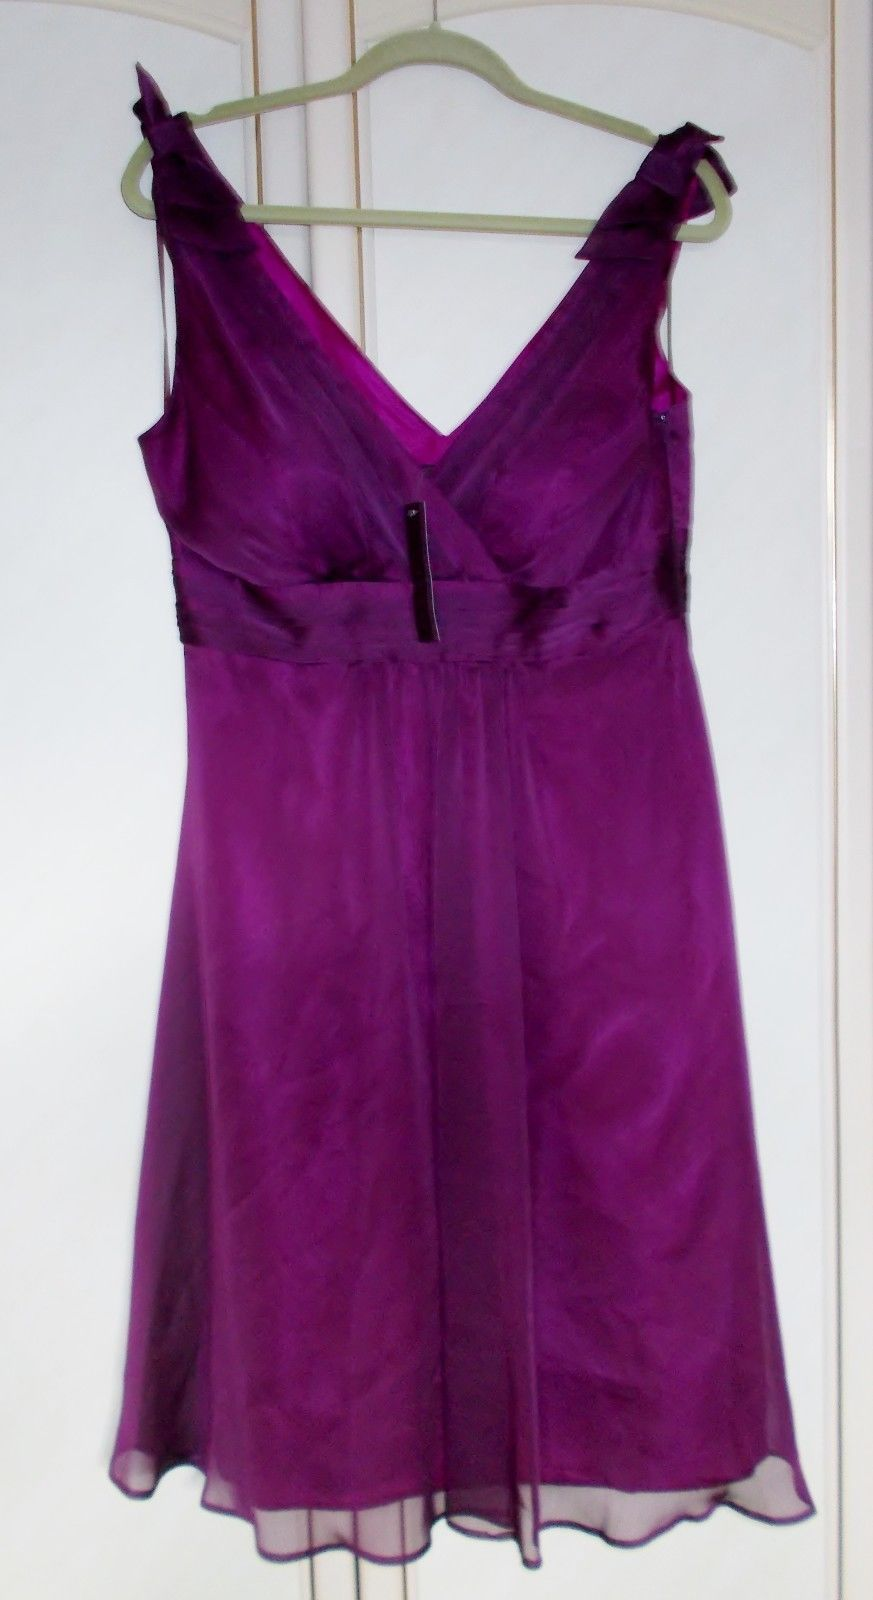 Dress for party wedding  Awesome Awesome BNWT Gorgeous Debut Debenhams Purple Dress Prom